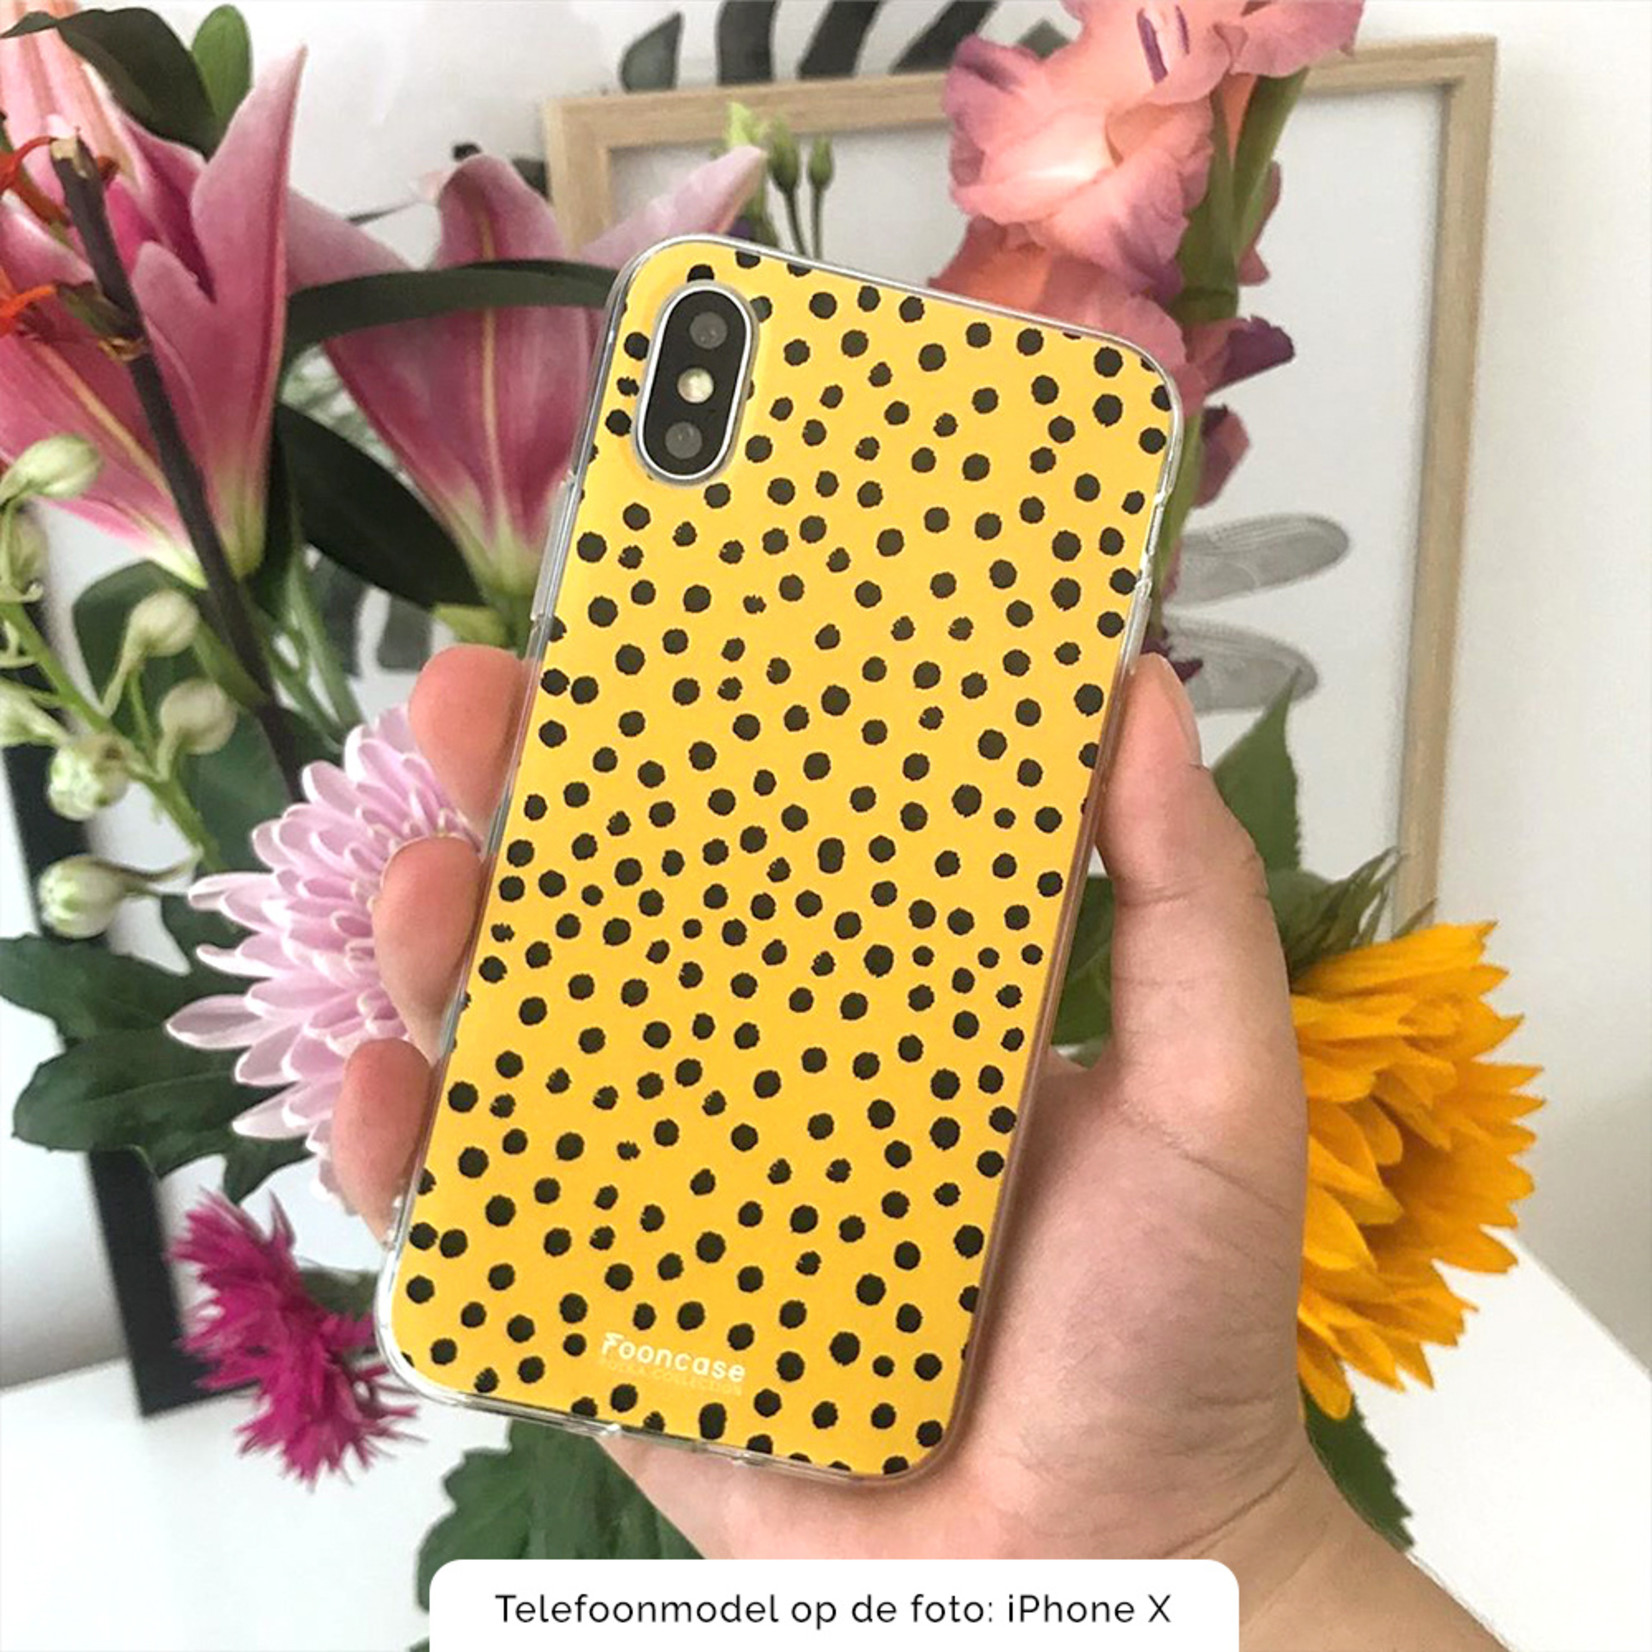 FOONCASE iPhone 11 Pro Max hoesje TPU Soft Case - Back Cover - POLKA COLLECTION / Stipjes / Stippen / Oker Geel